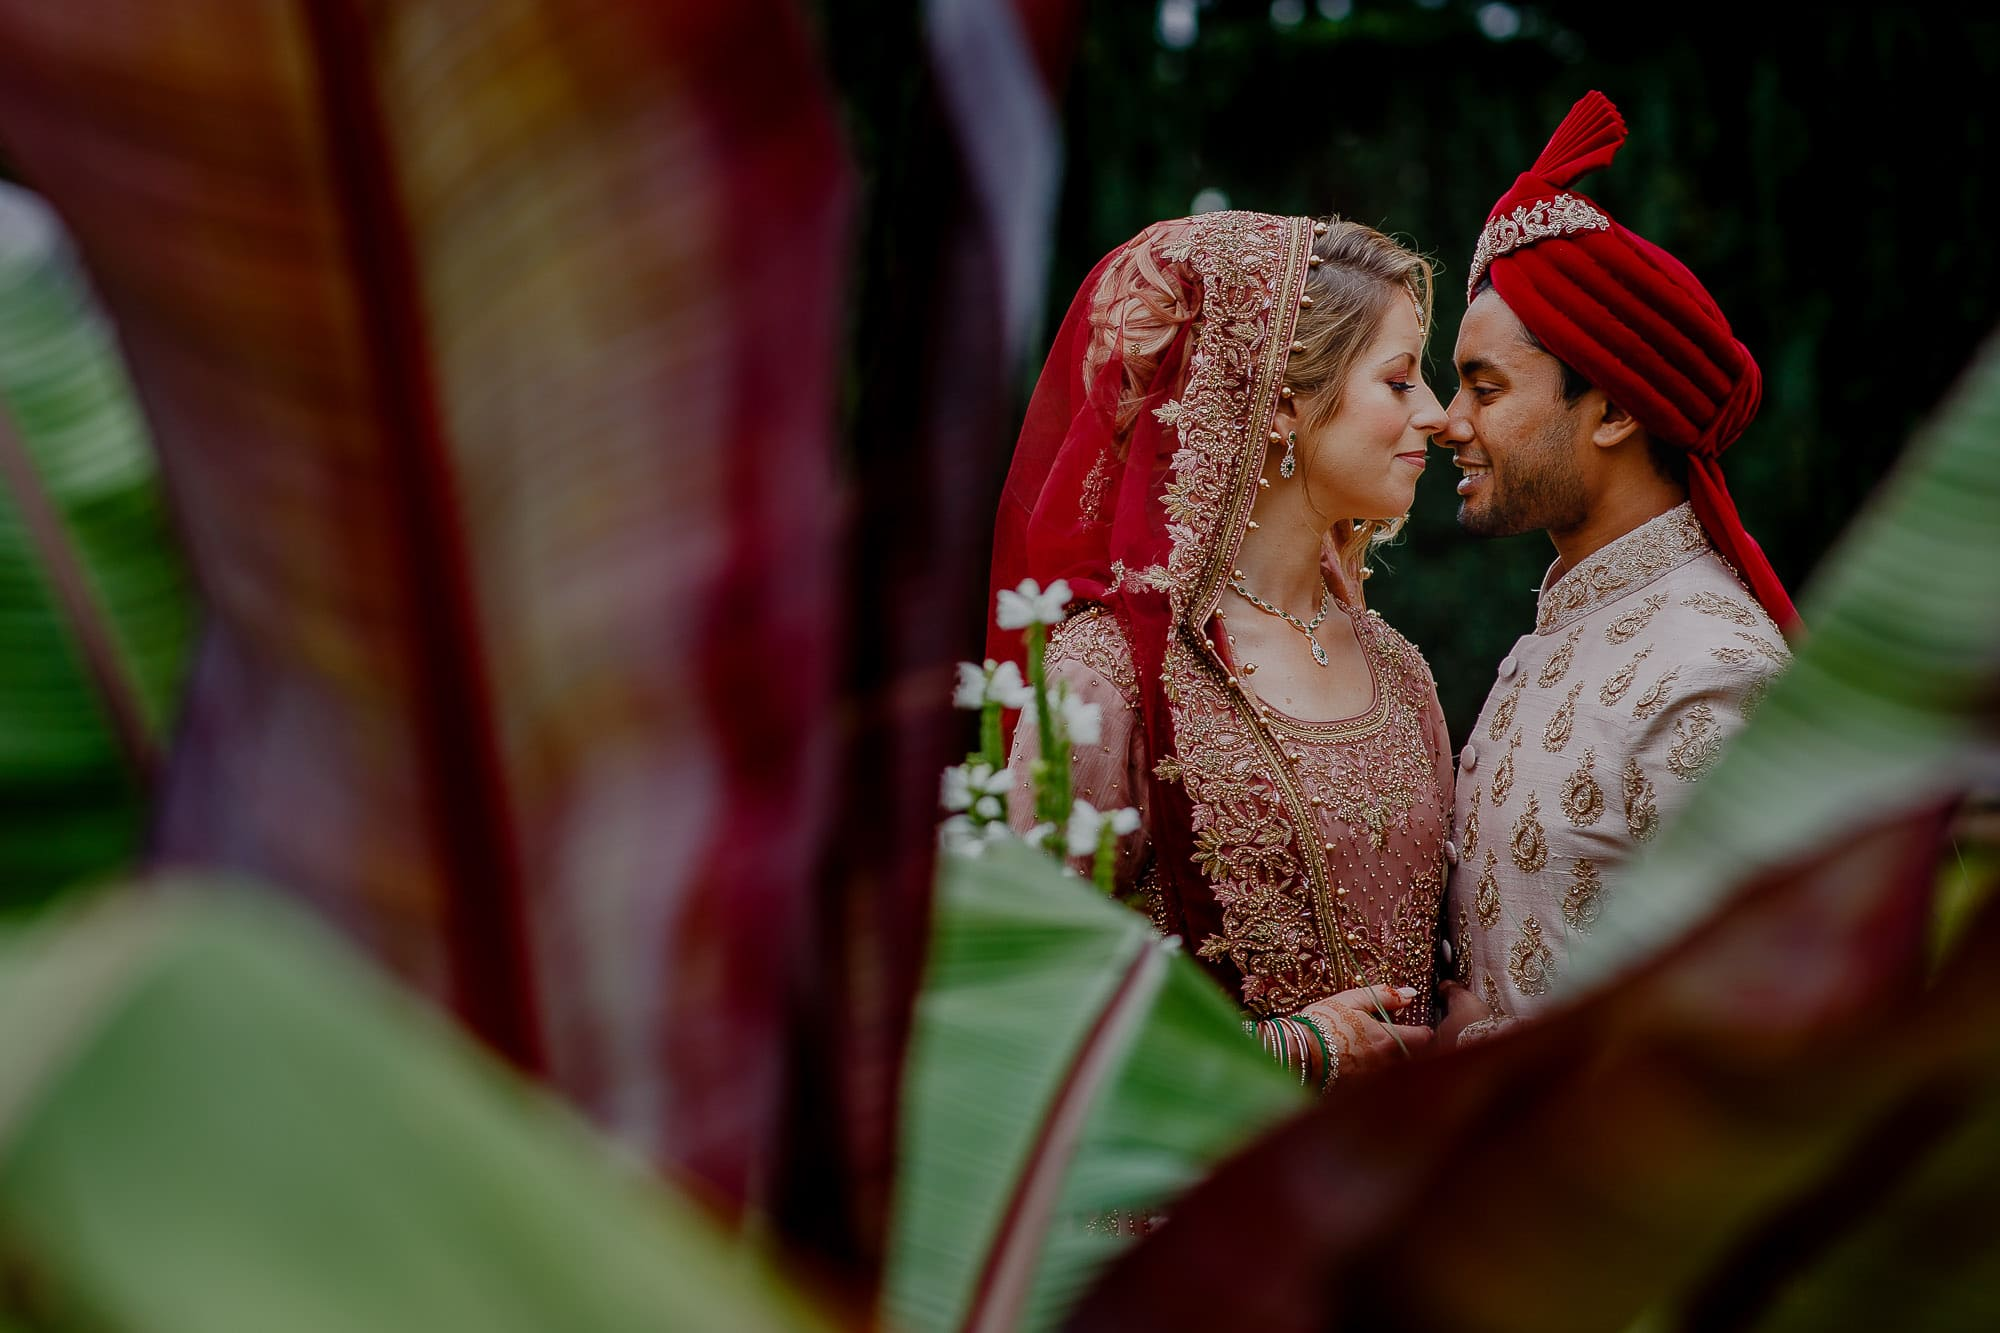 Asian and English wedding couple in vibrant sira outfit.